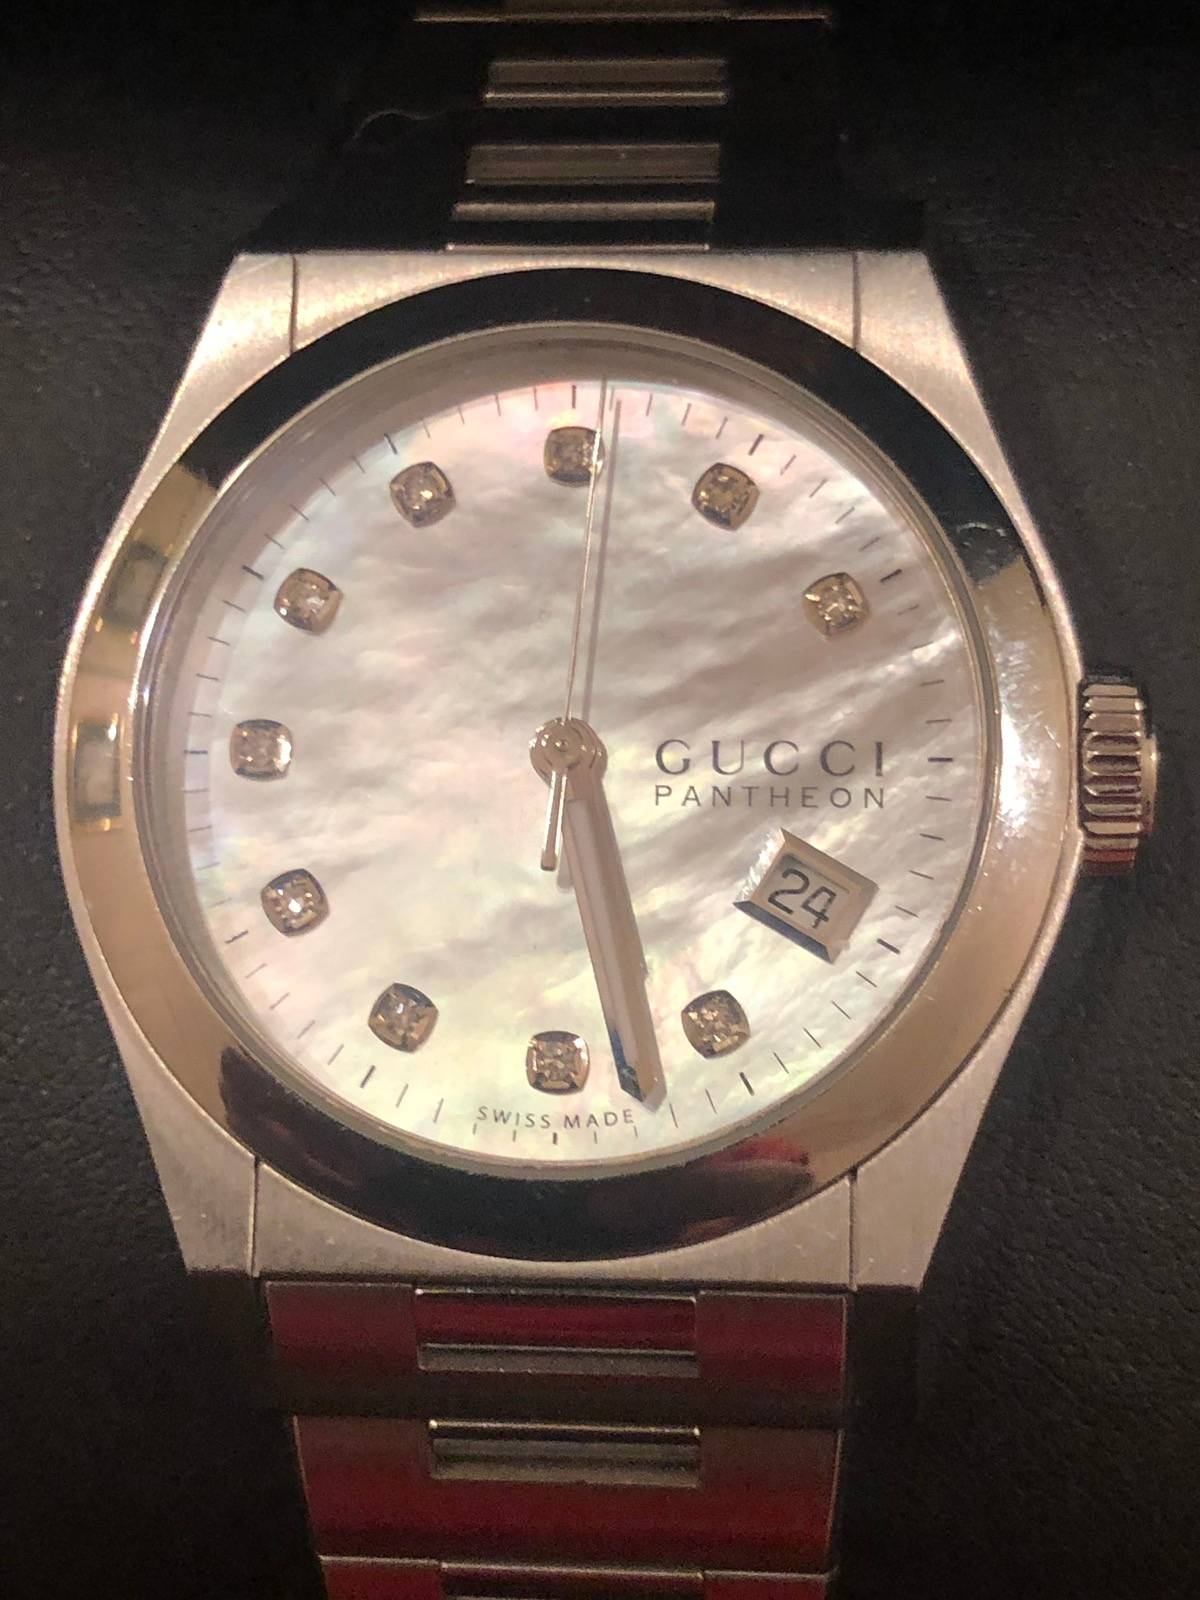 6a589dfb962 Gucci Gucci Watch X Pantheon Size one size - Jewelry   Watches for ...